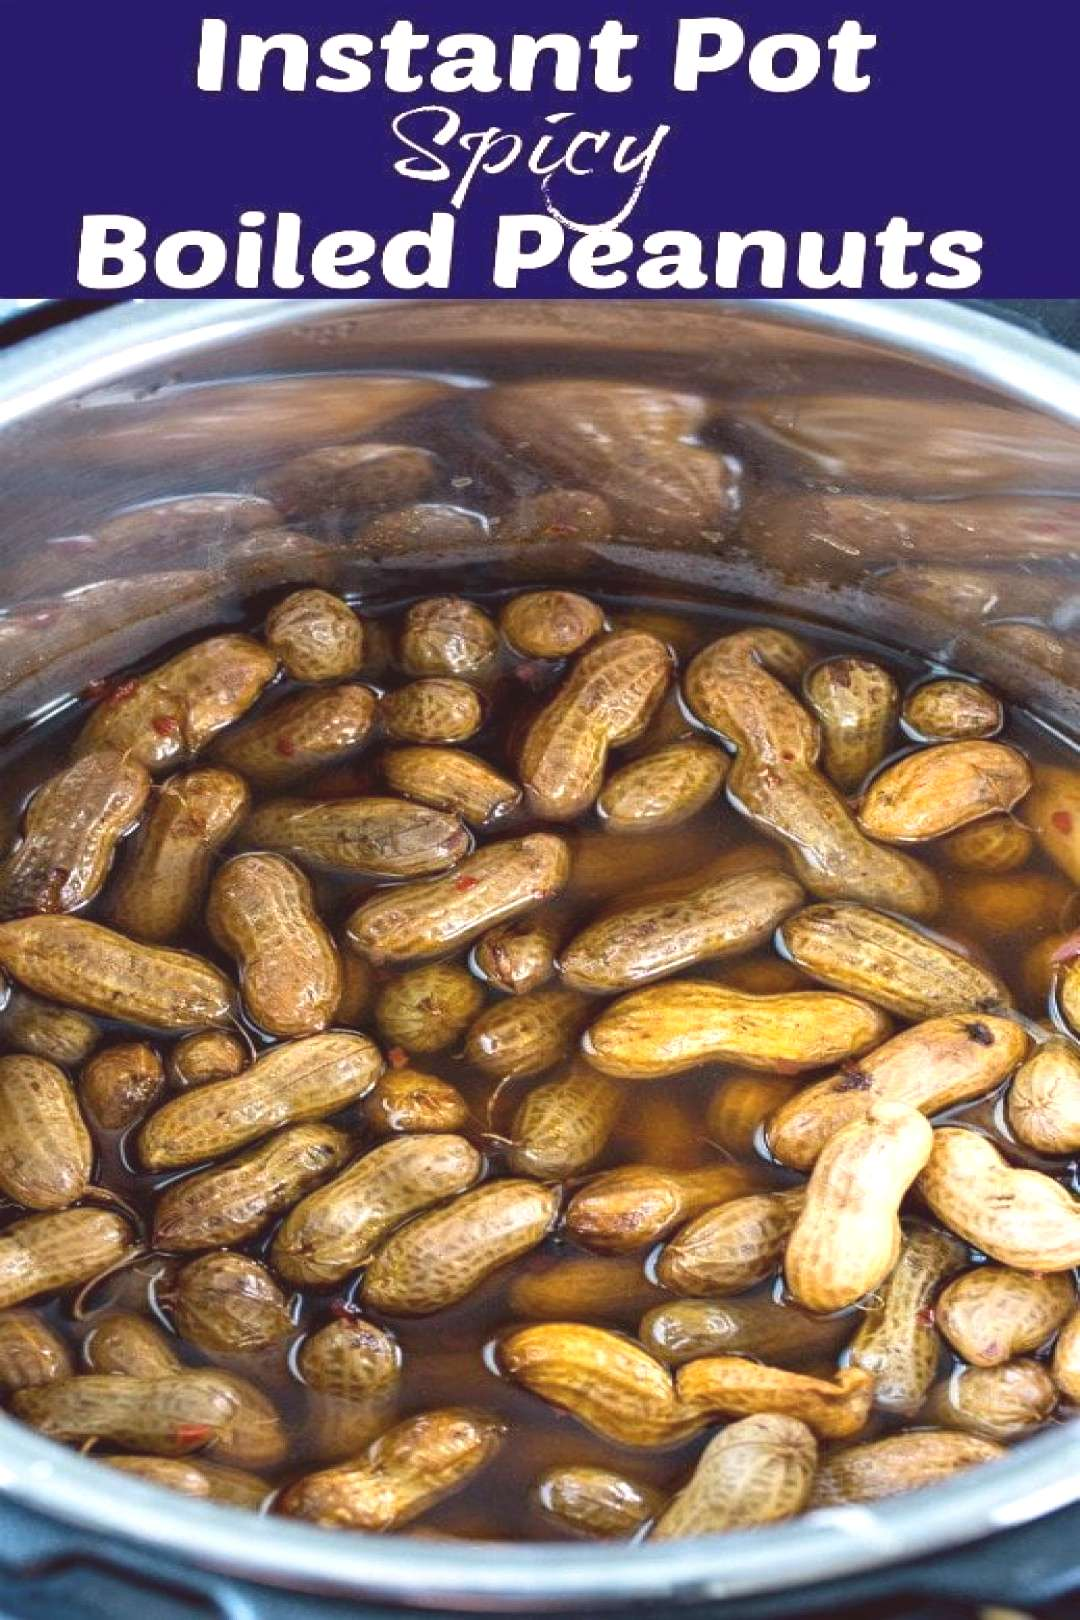 Instant Pot Spicy Boiled Peanuts -